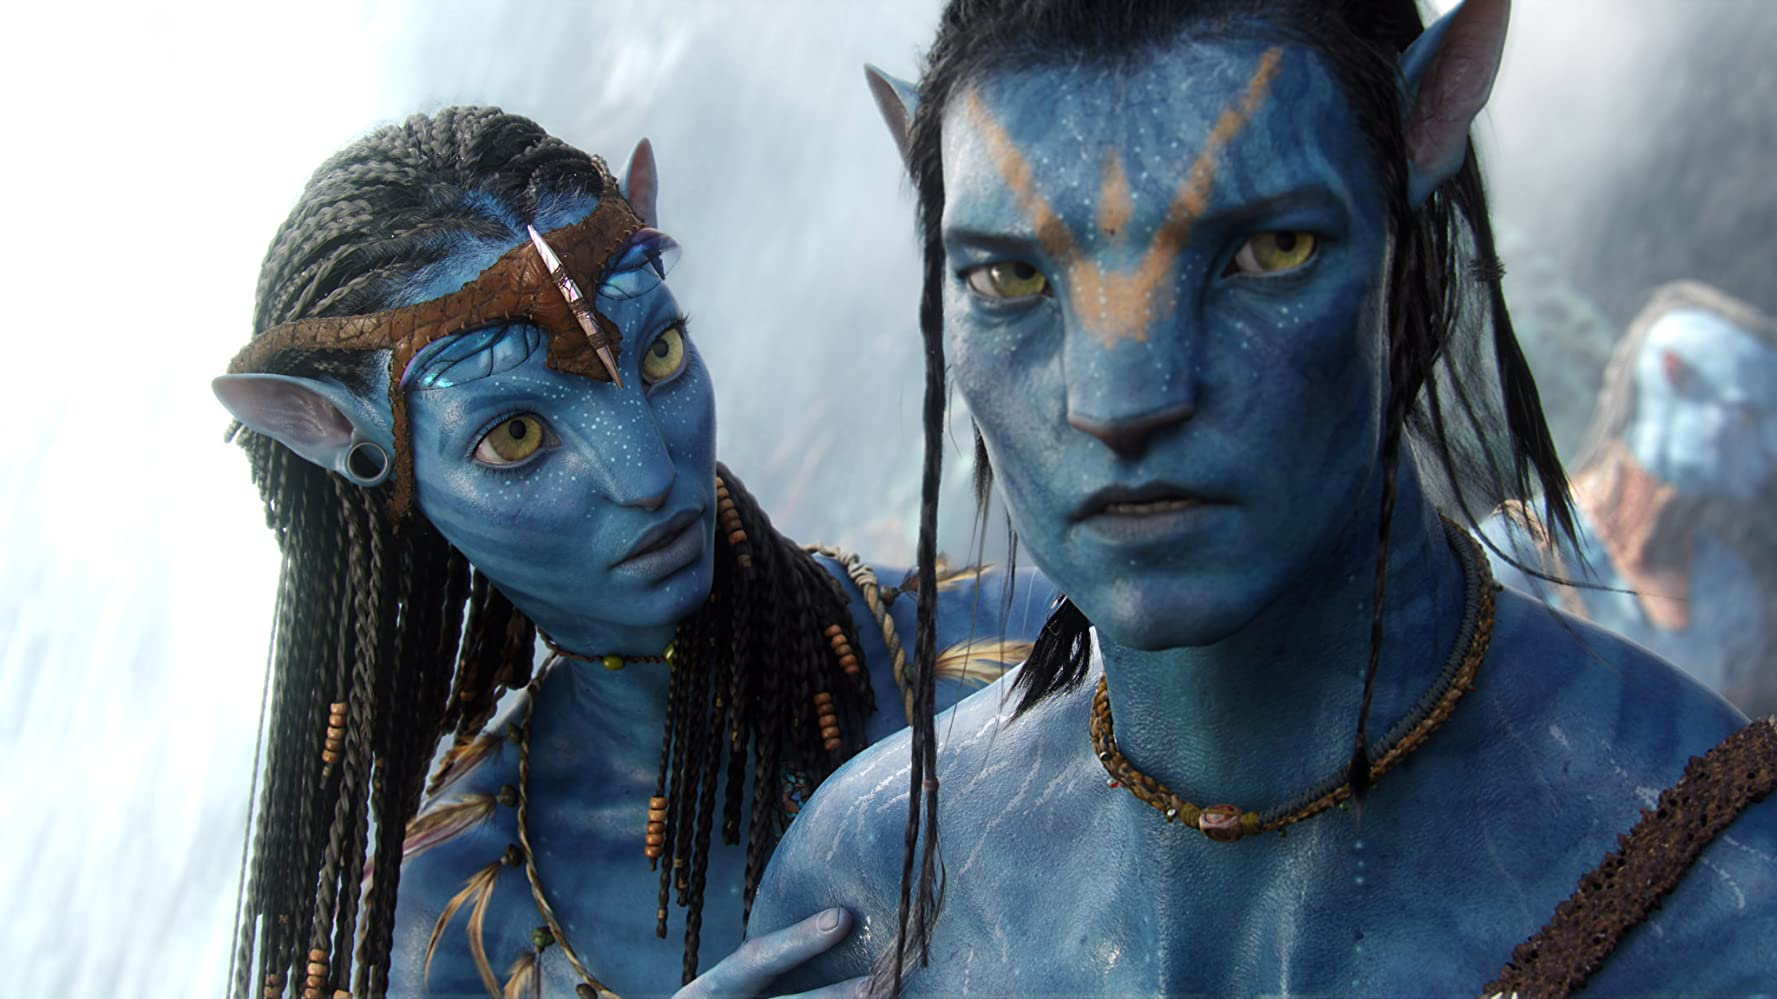 Zoe Saldana and Sam Worthington in Avatar (2009)